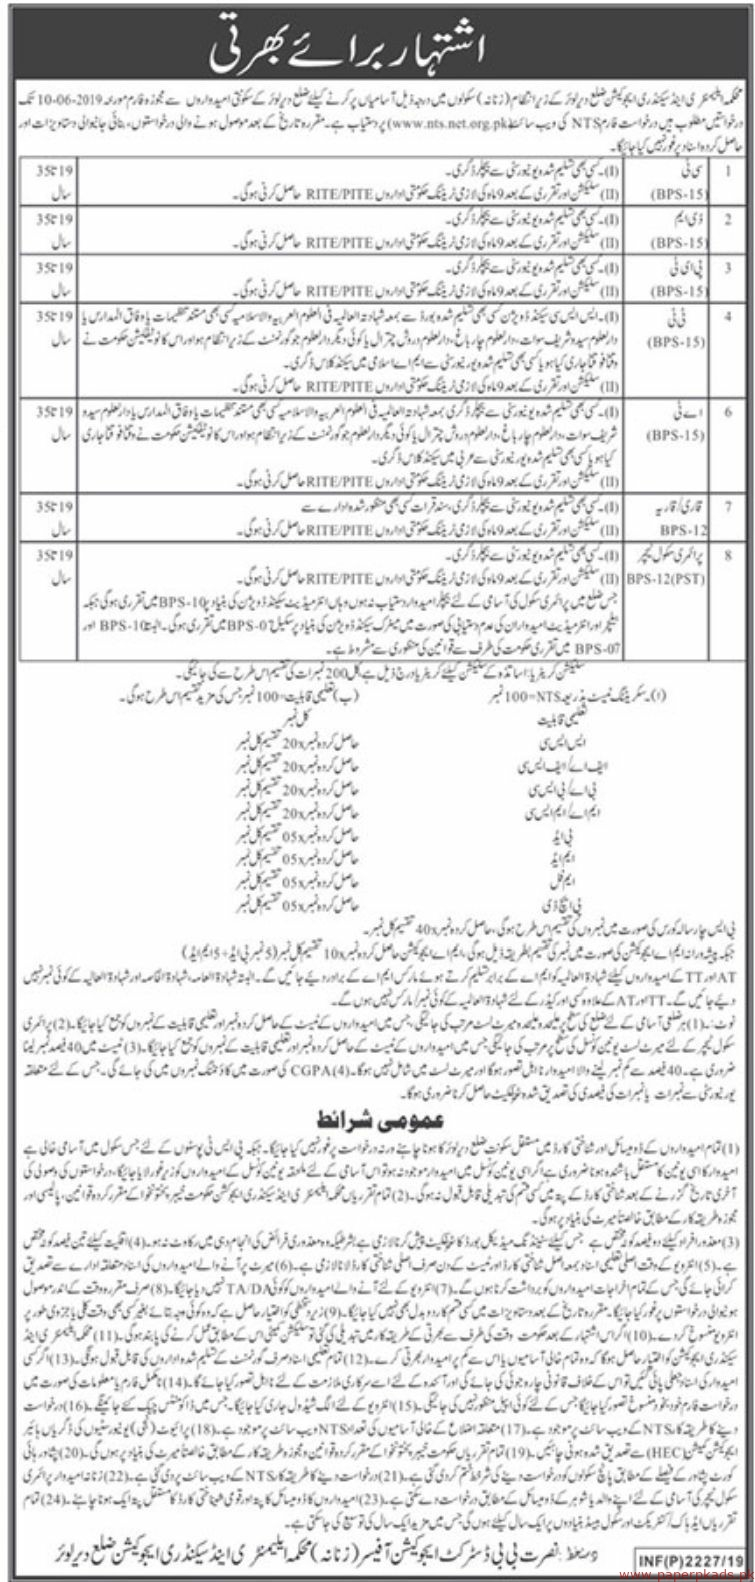 Elementary & Secondary Education Department Dir Lower Jobs 2019 Latest